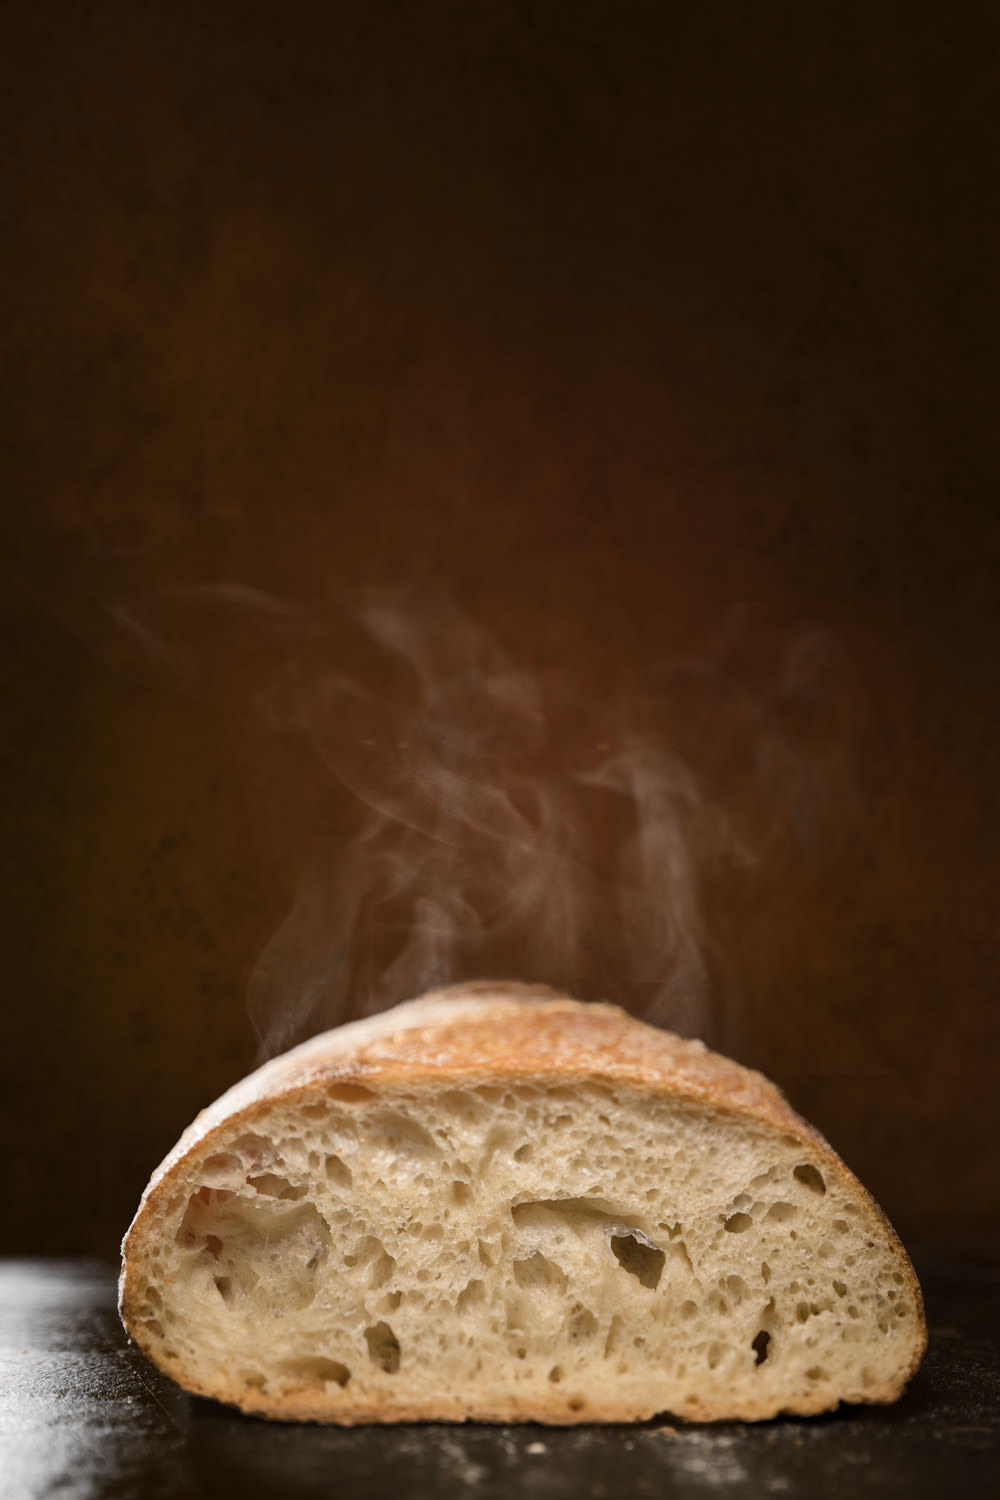 Steam rises from a fresh loaf of sourdough bread seen sliced open